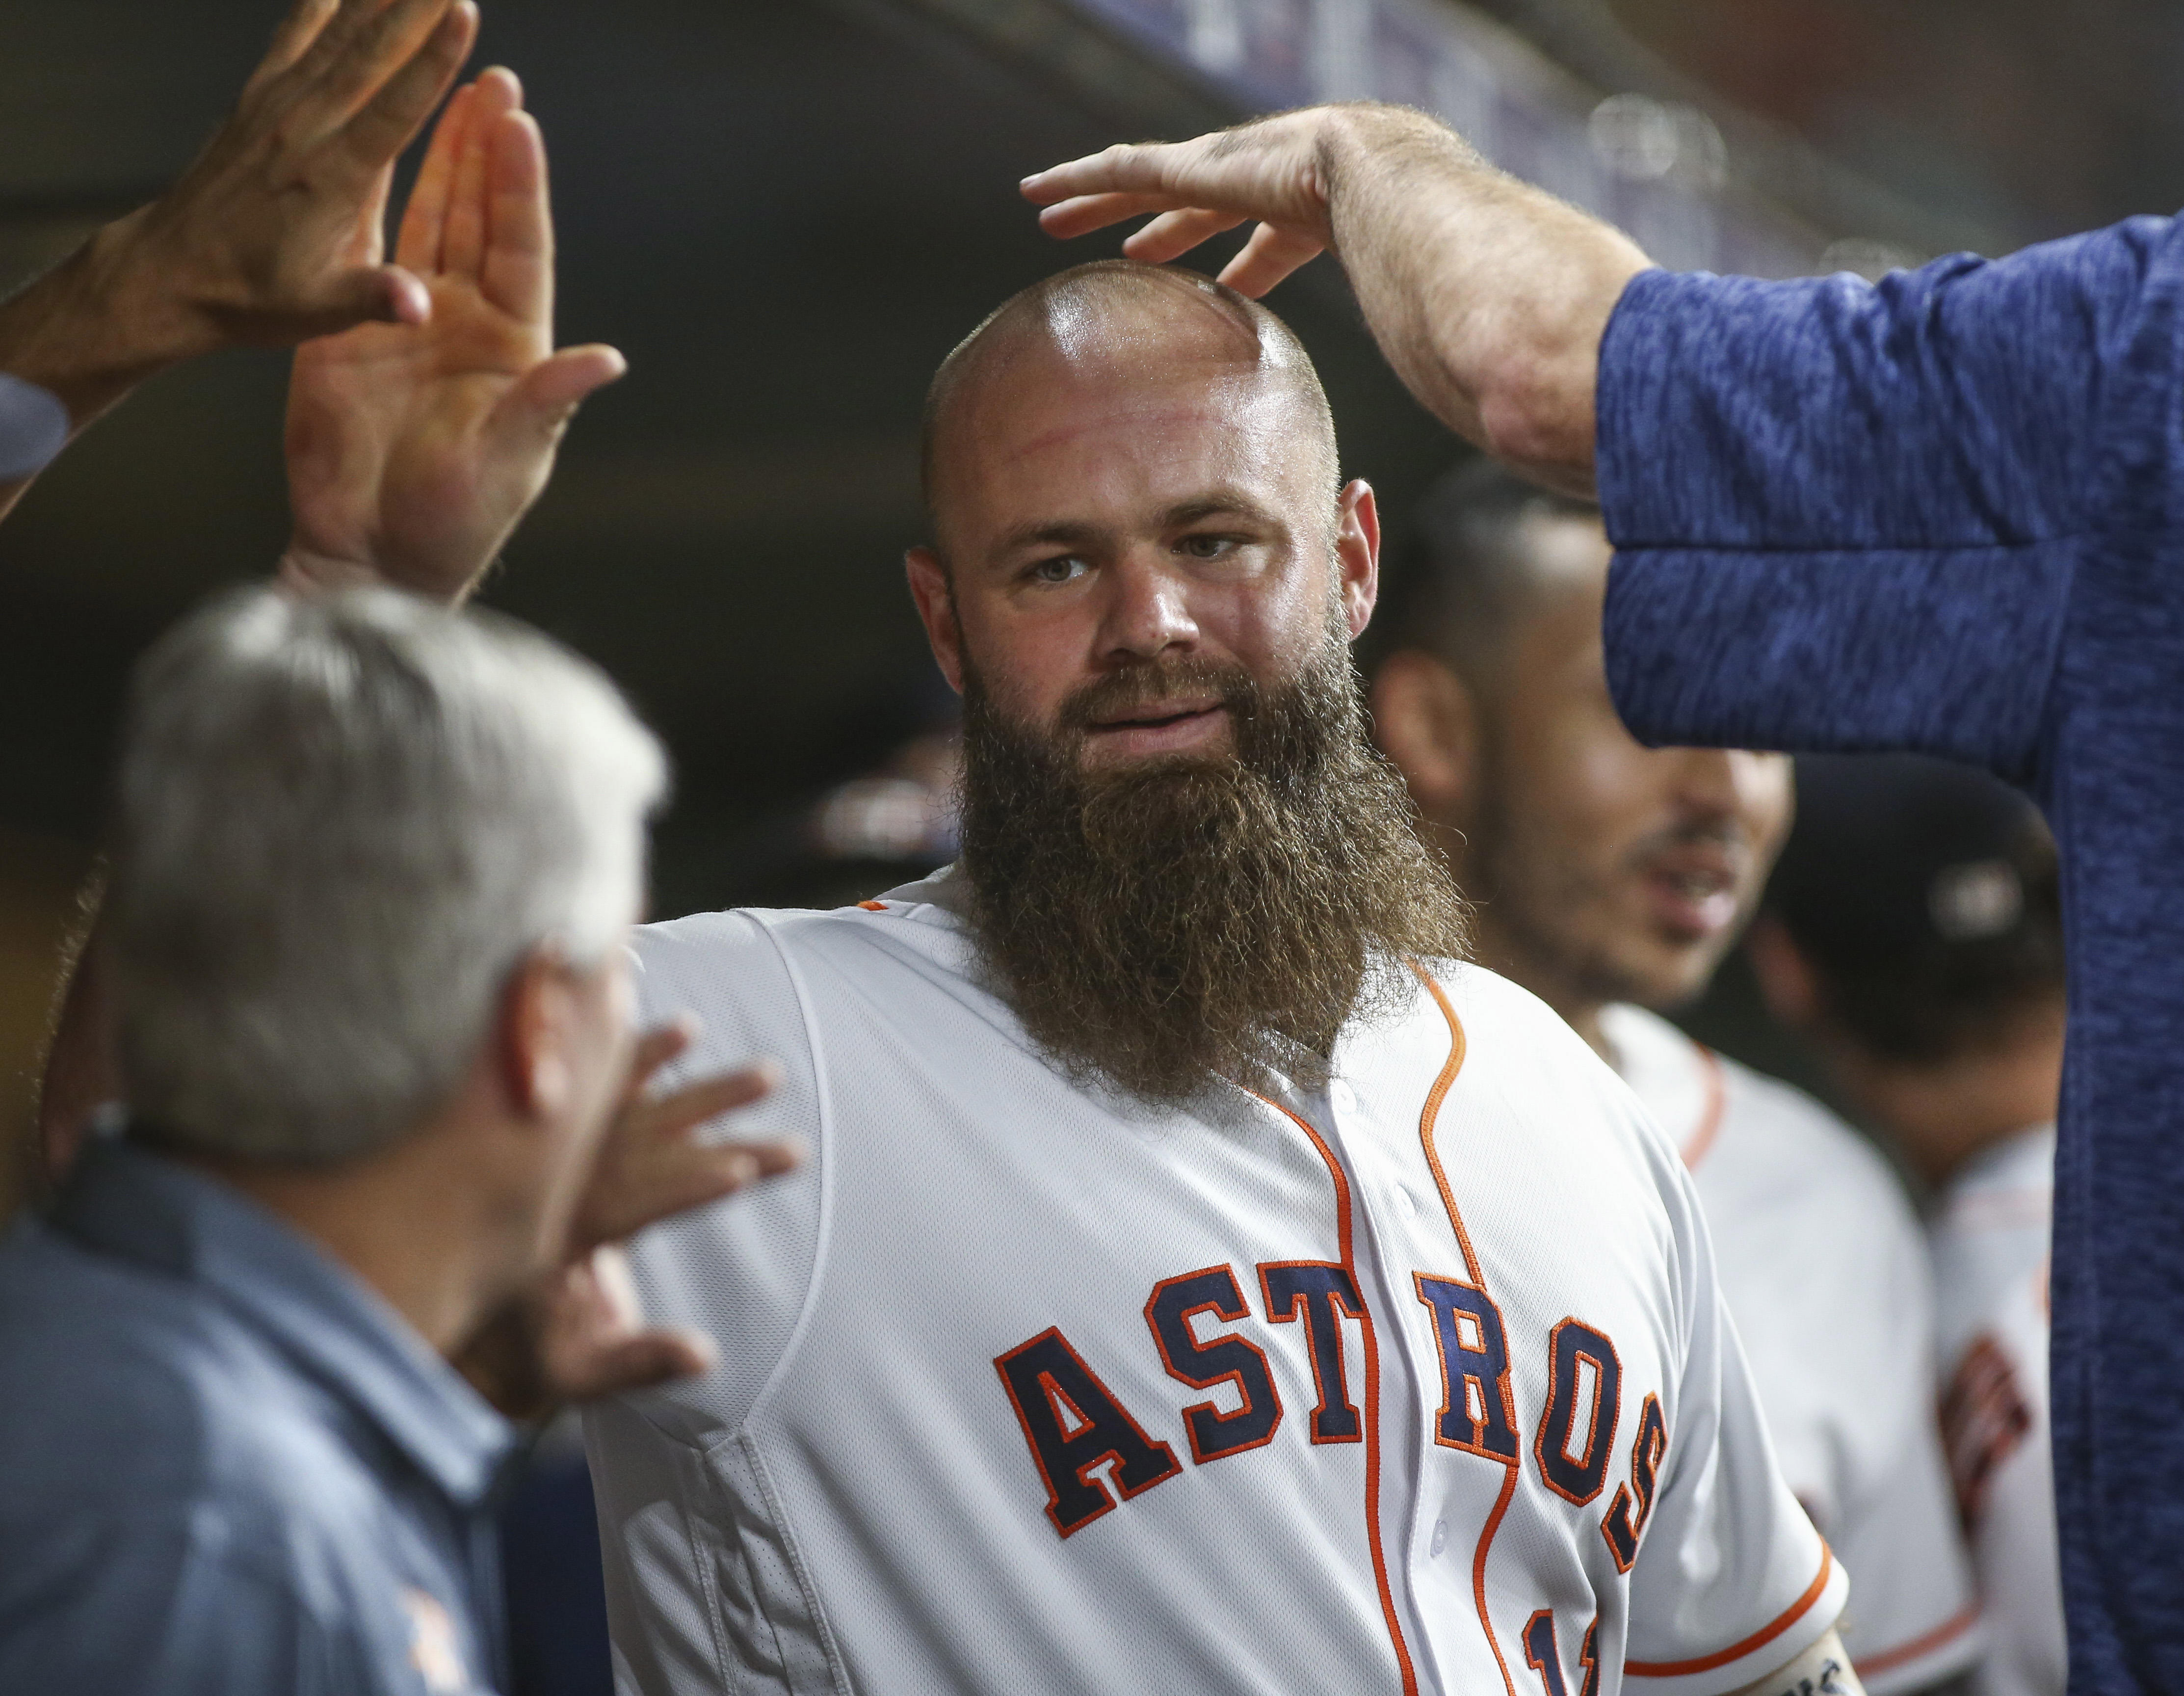 Evan Gattis admits Astros 'cheated baseball' in lengthy apology to MLB, fans